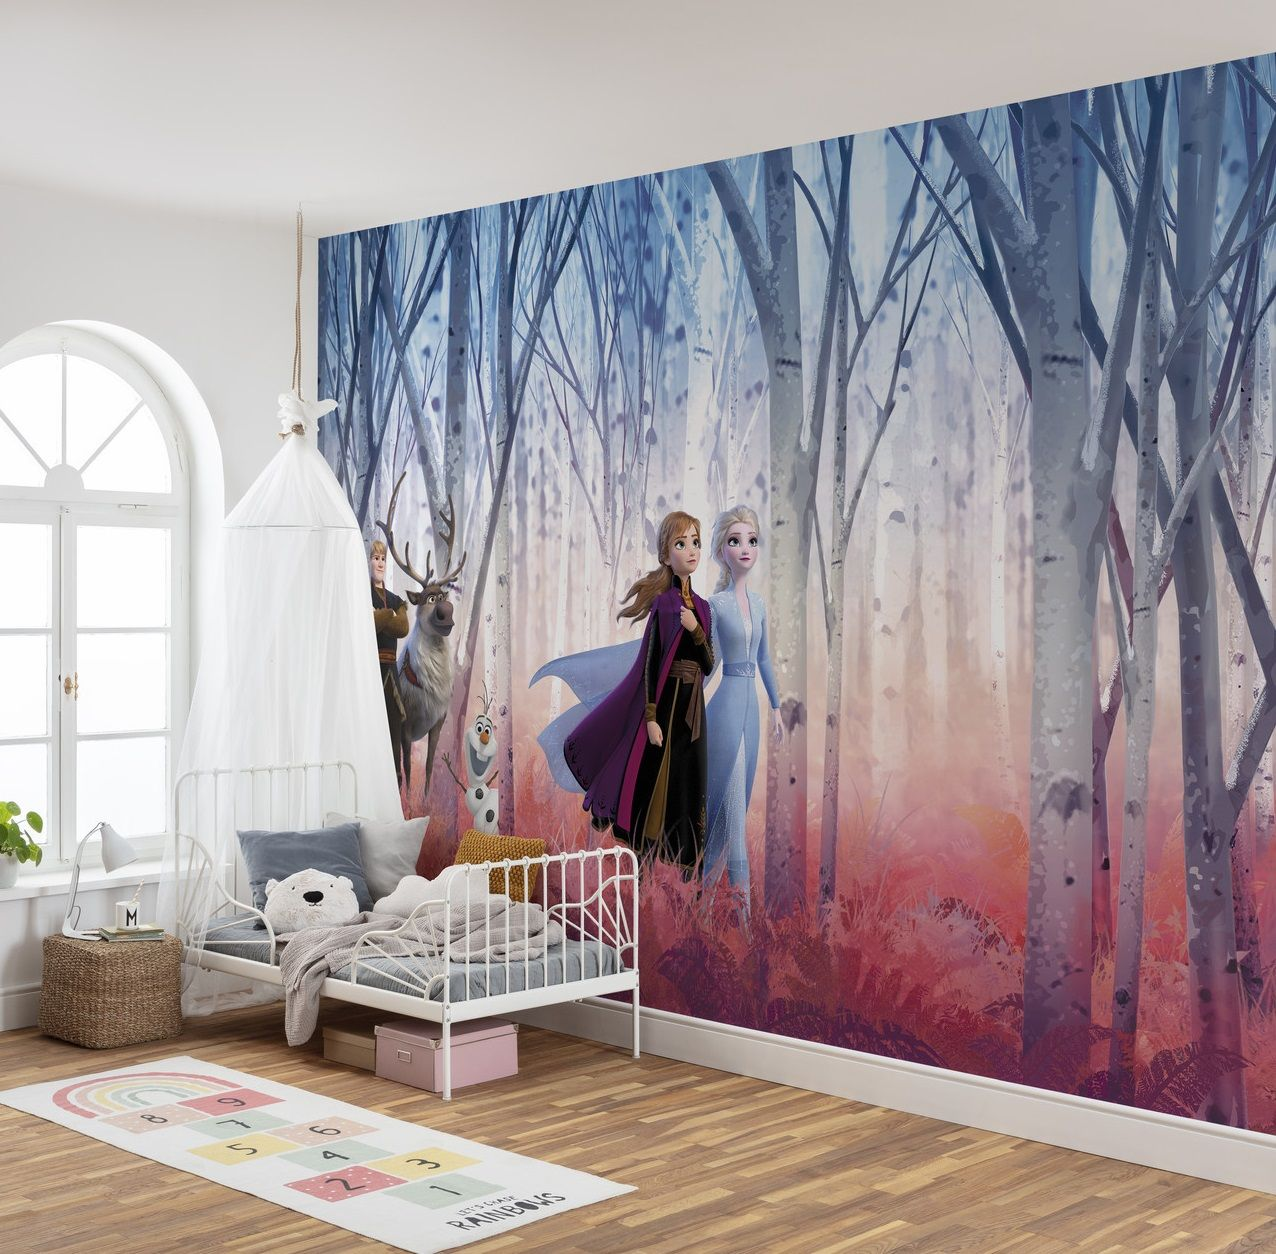 Giant Wall Mural Photo Wallpaper 144x100inch Princess